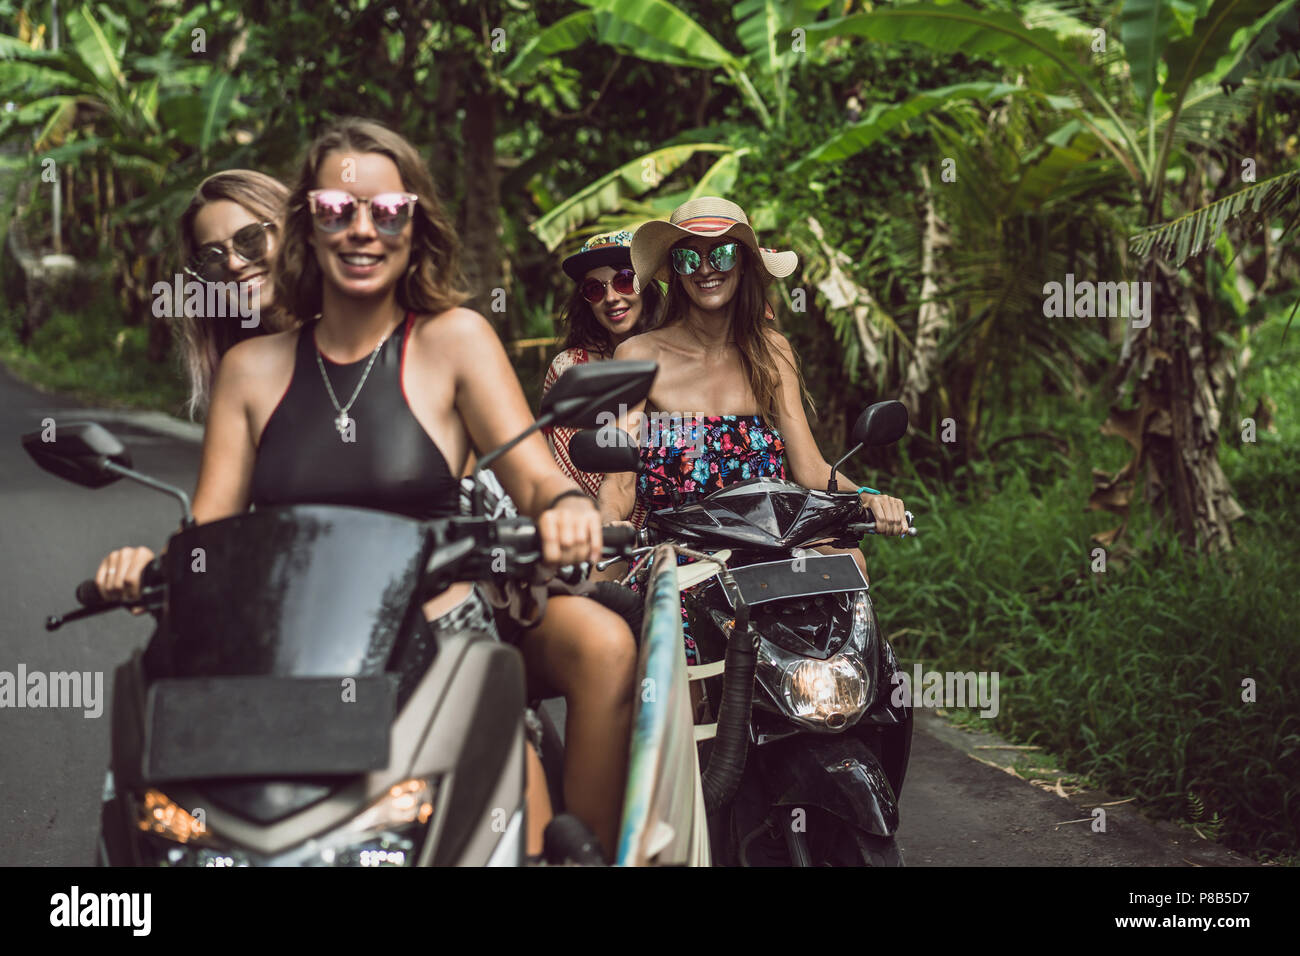 beautiful young women riding motorbikes and smiling at camera in jungles - Stock Image